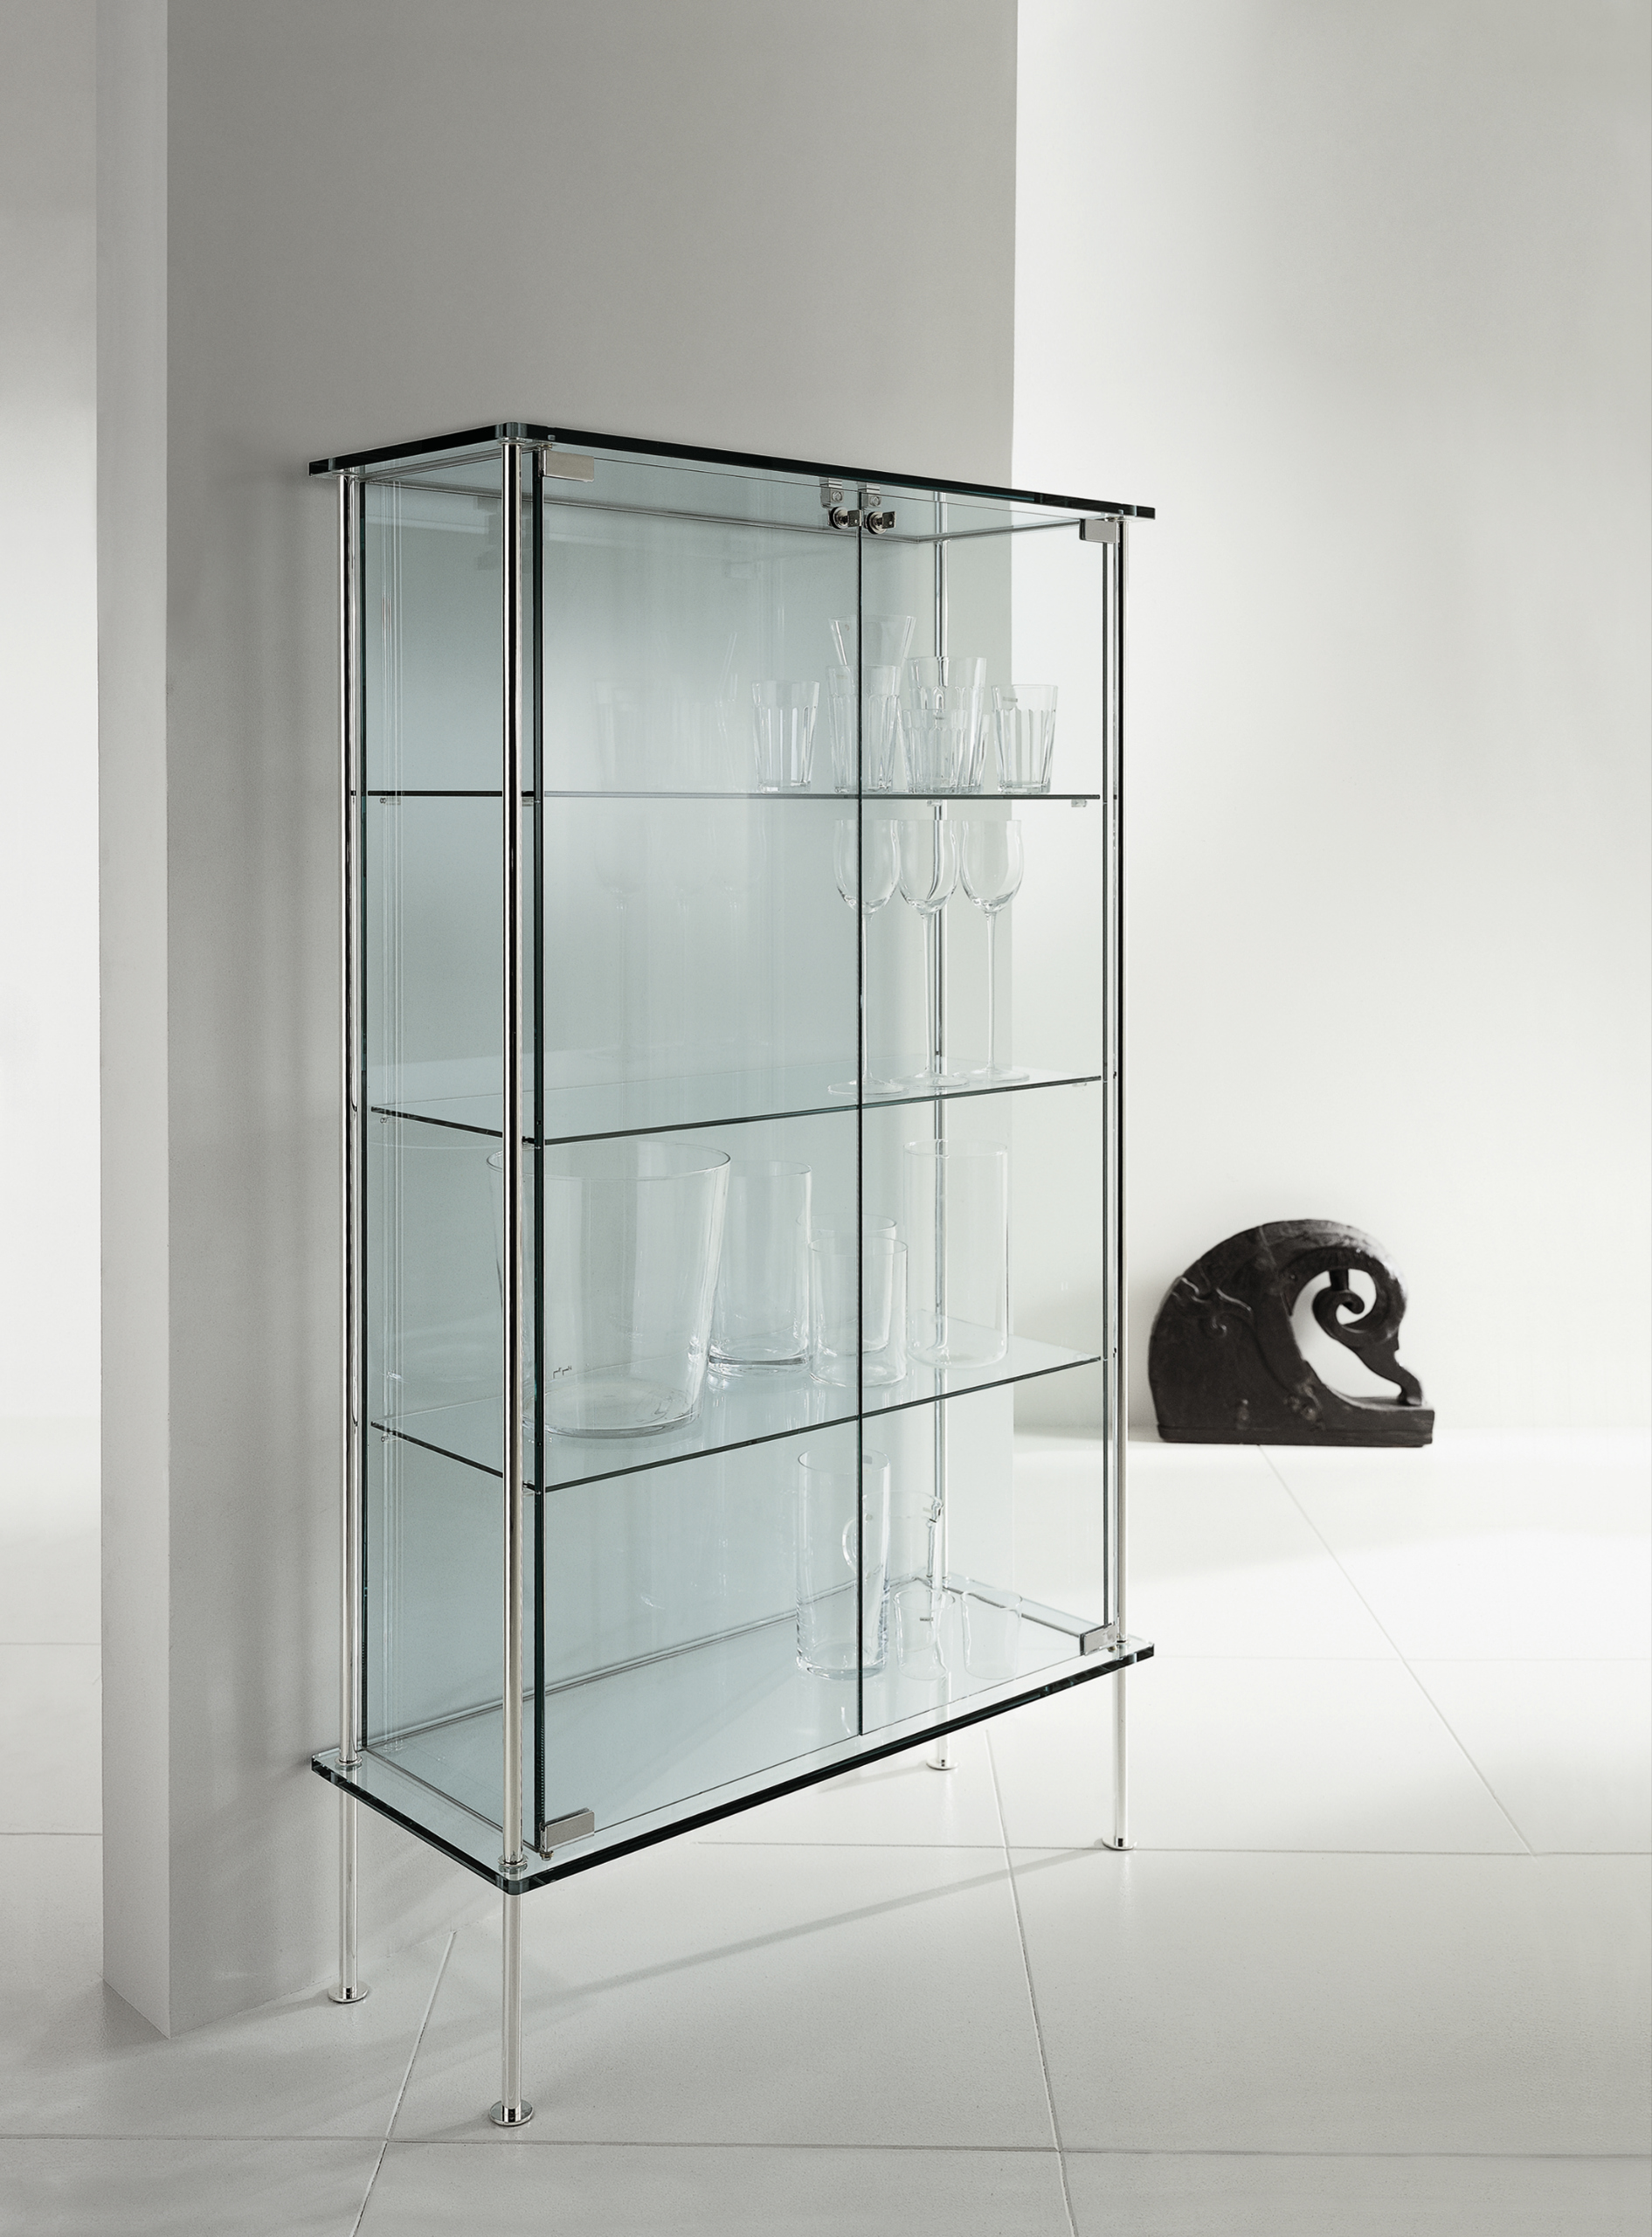 vitrine en verre shine by t d tonelli design design donato d 39 urbino paolo lomazzi. Black Bedroom Furniture Sets. Home Design Ideas